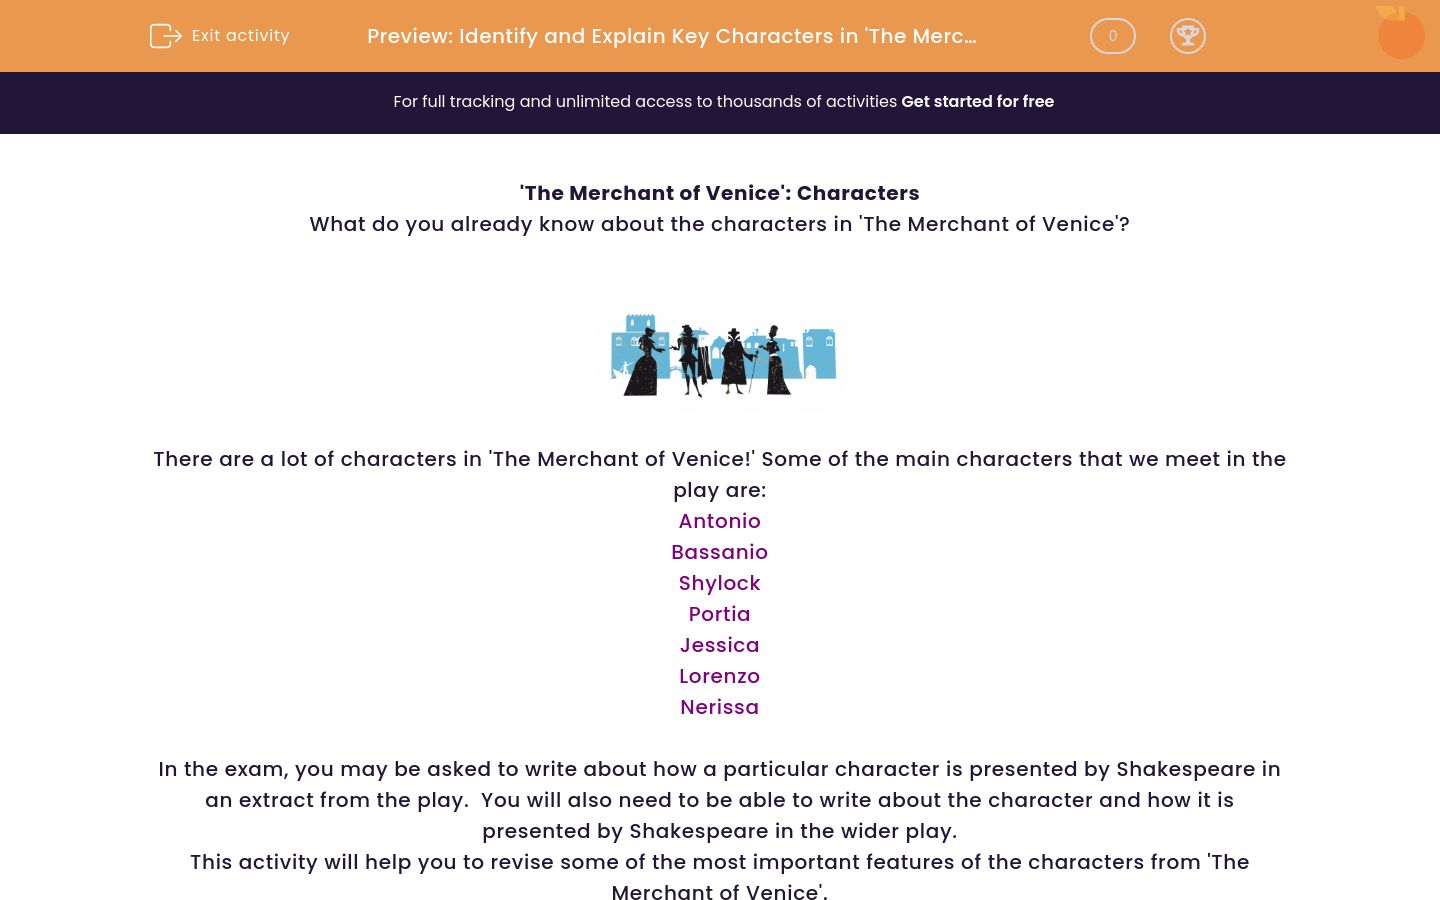 'Identify and Explain Key Characters in 'The Merchant of Venice'' worksheet